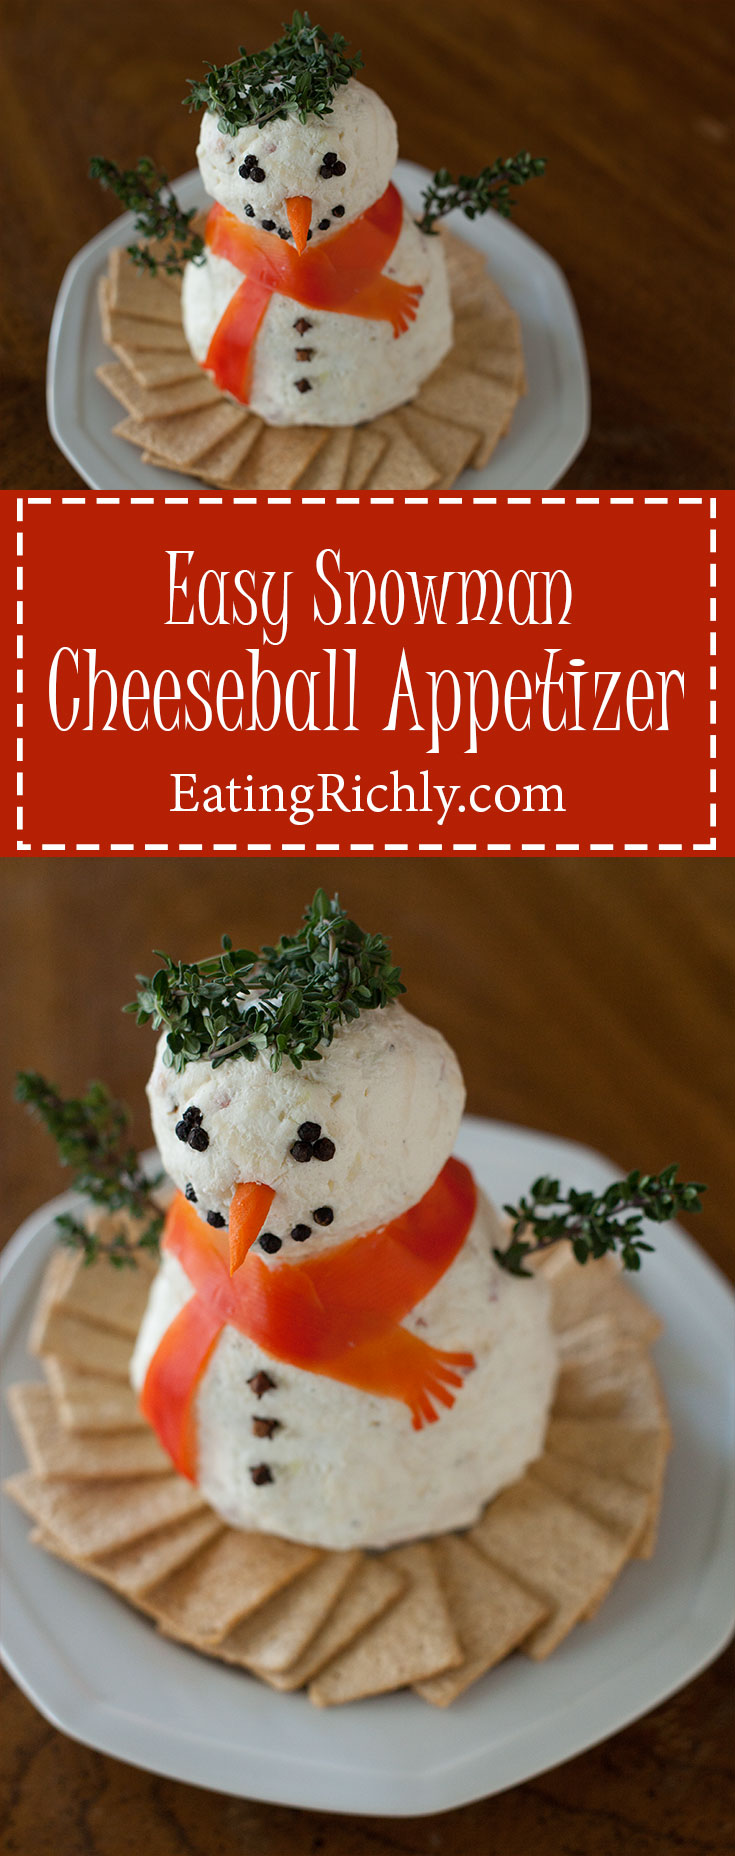 Christmas Cheese Ball.Christmas Cheeseball Snowman Recipe